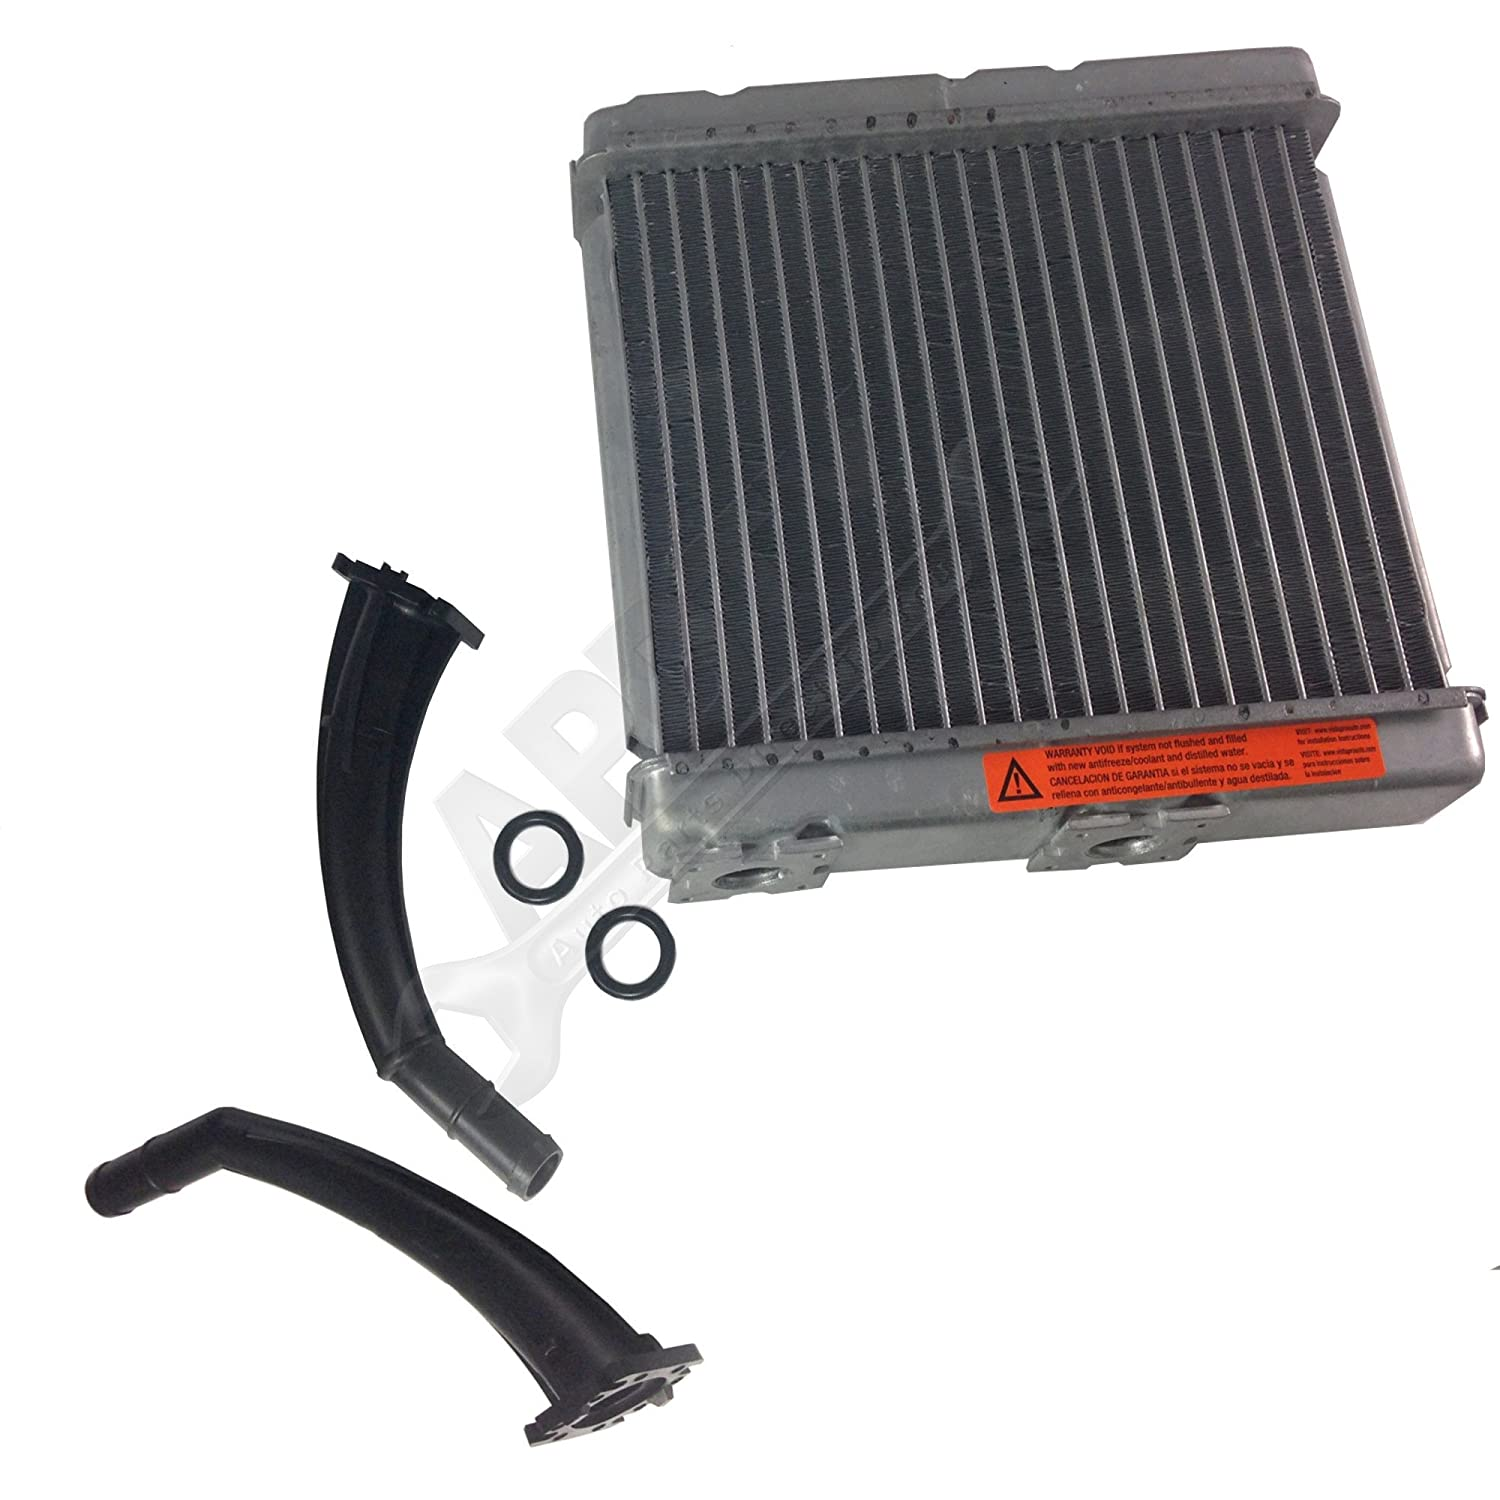 Replaces 27140-7Z102, 27140-1E400 2002 2003 2004 Nissan Frontier 4-Door APDTY 013100 /& 8231386 Heater Core Kit With Inlet /& Outlet Plastic Tube Pipes Fits 2000-2004 Nissan Xterra 4-Door 3.3L V6